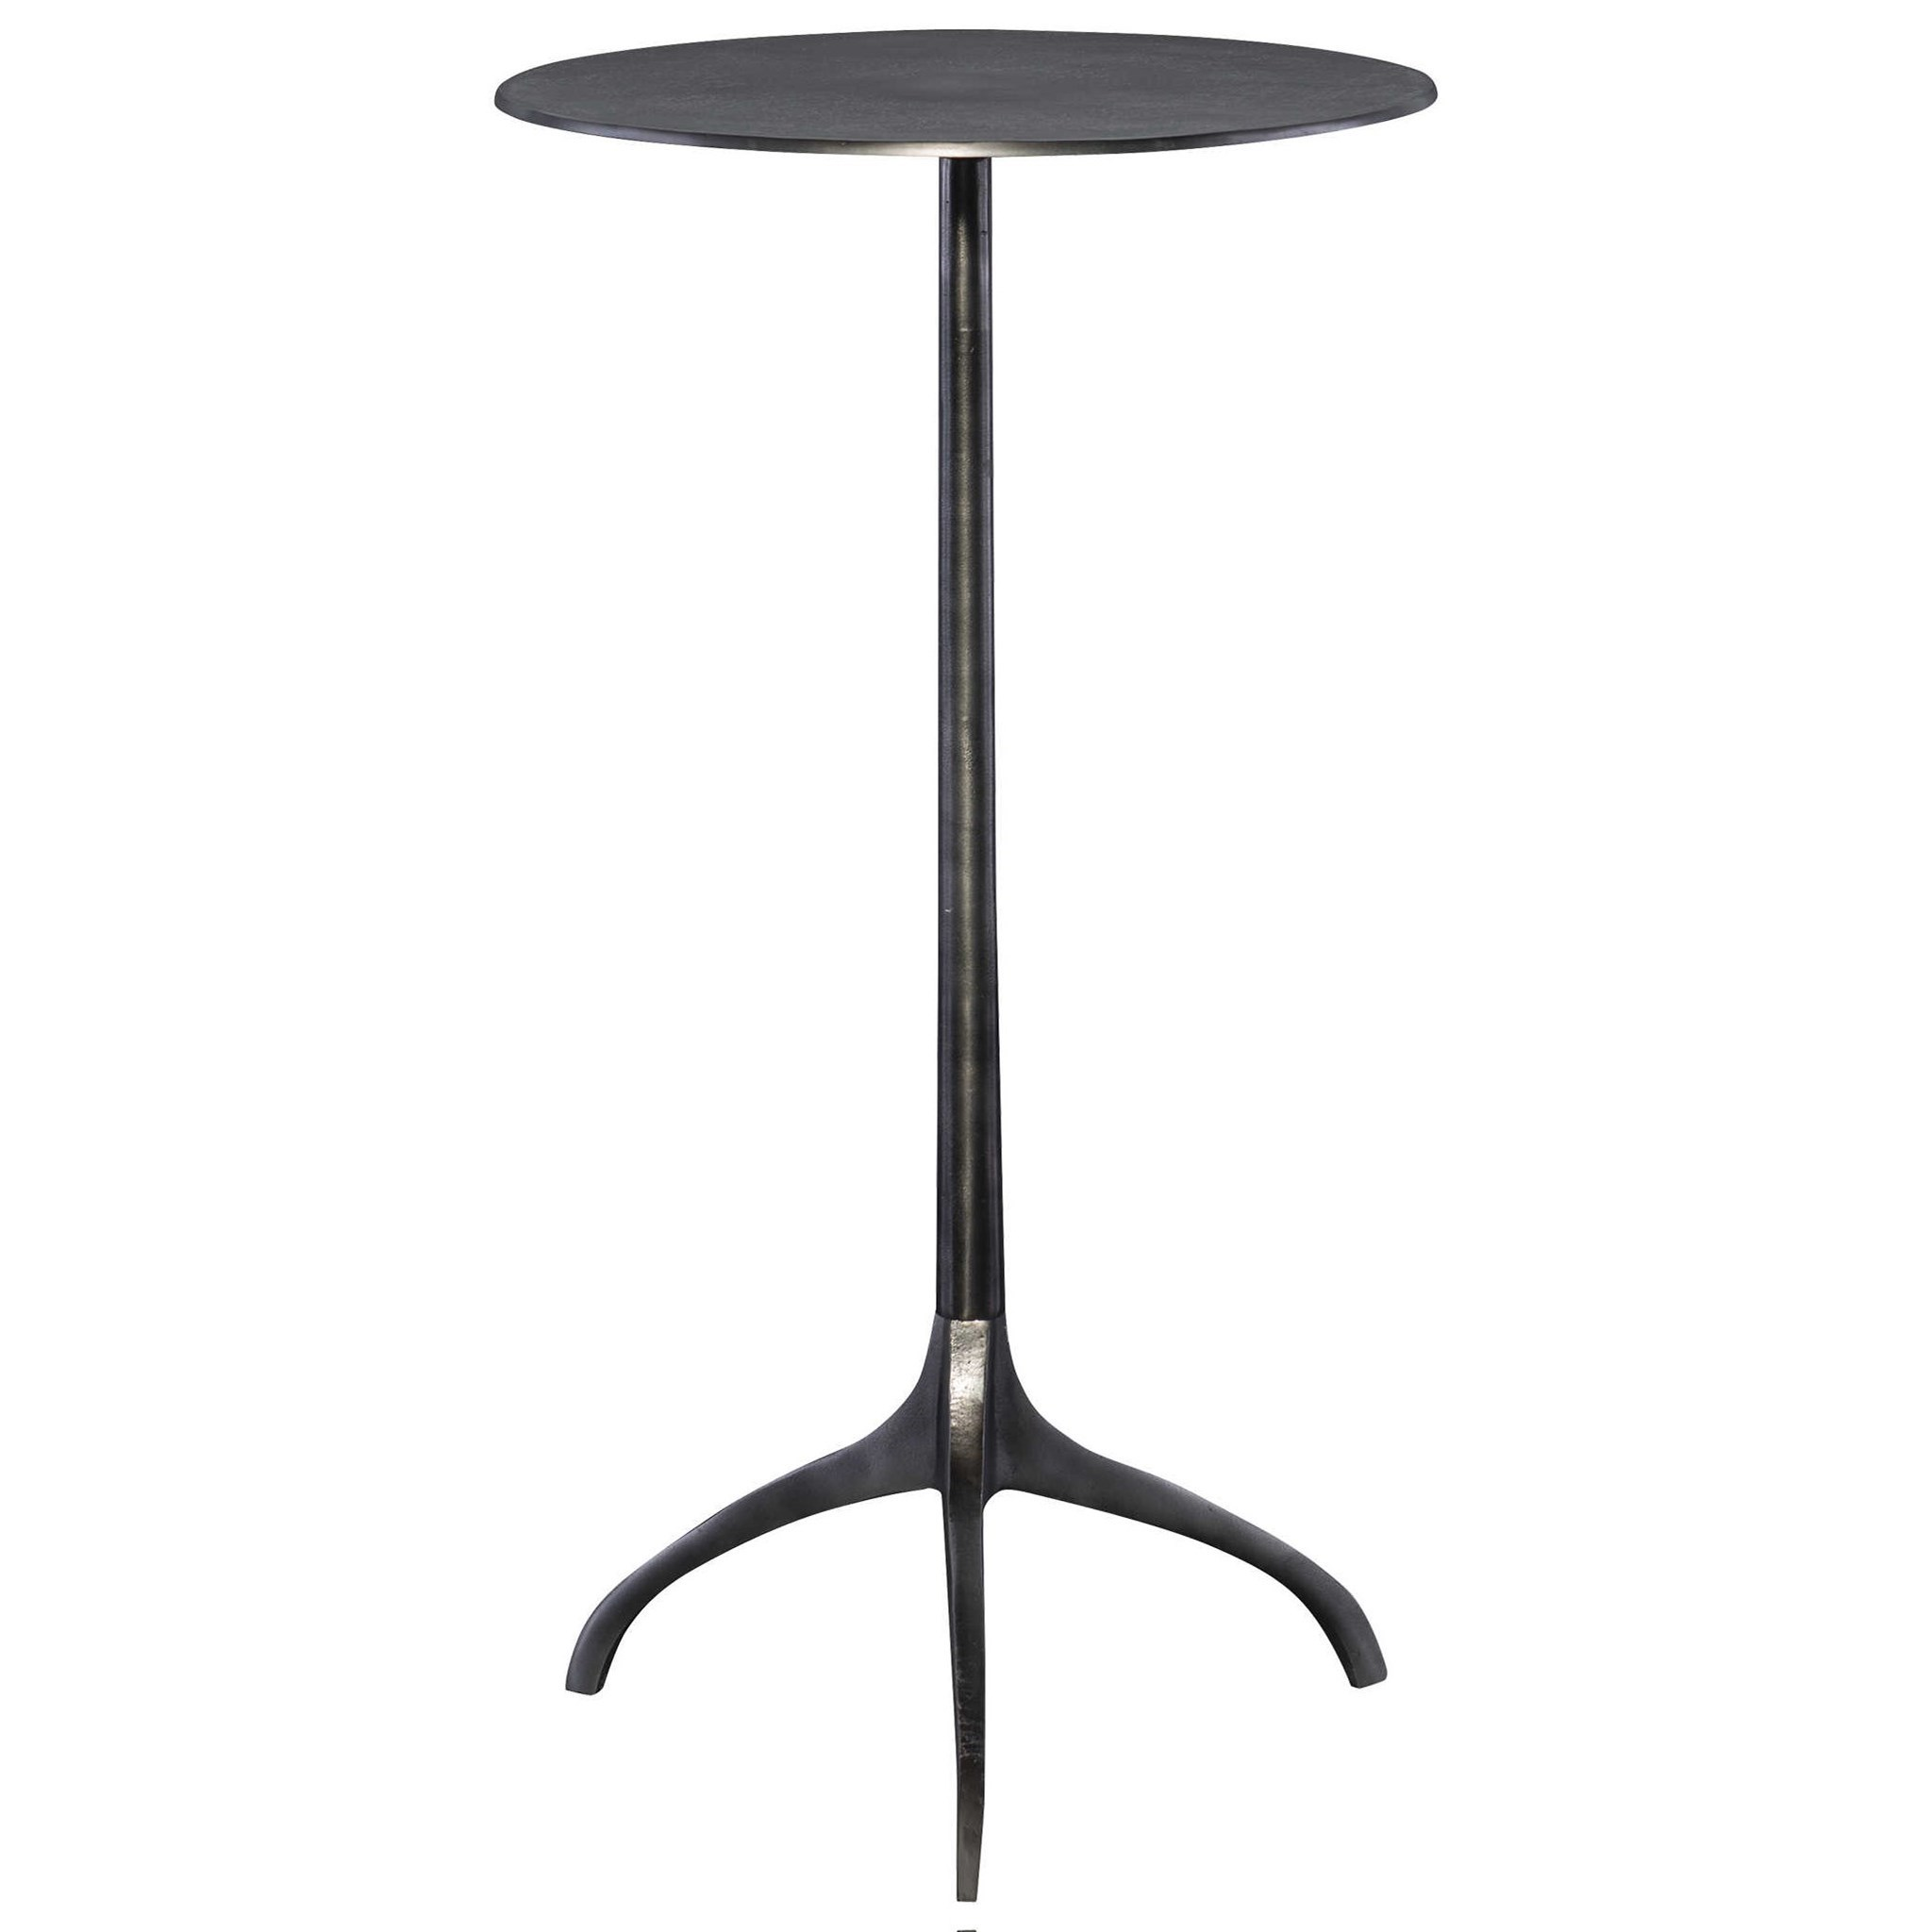 Accent Furniture - Occasional Tables Beacon Industrial Accent Table by Uttermost at Reid's Furniture